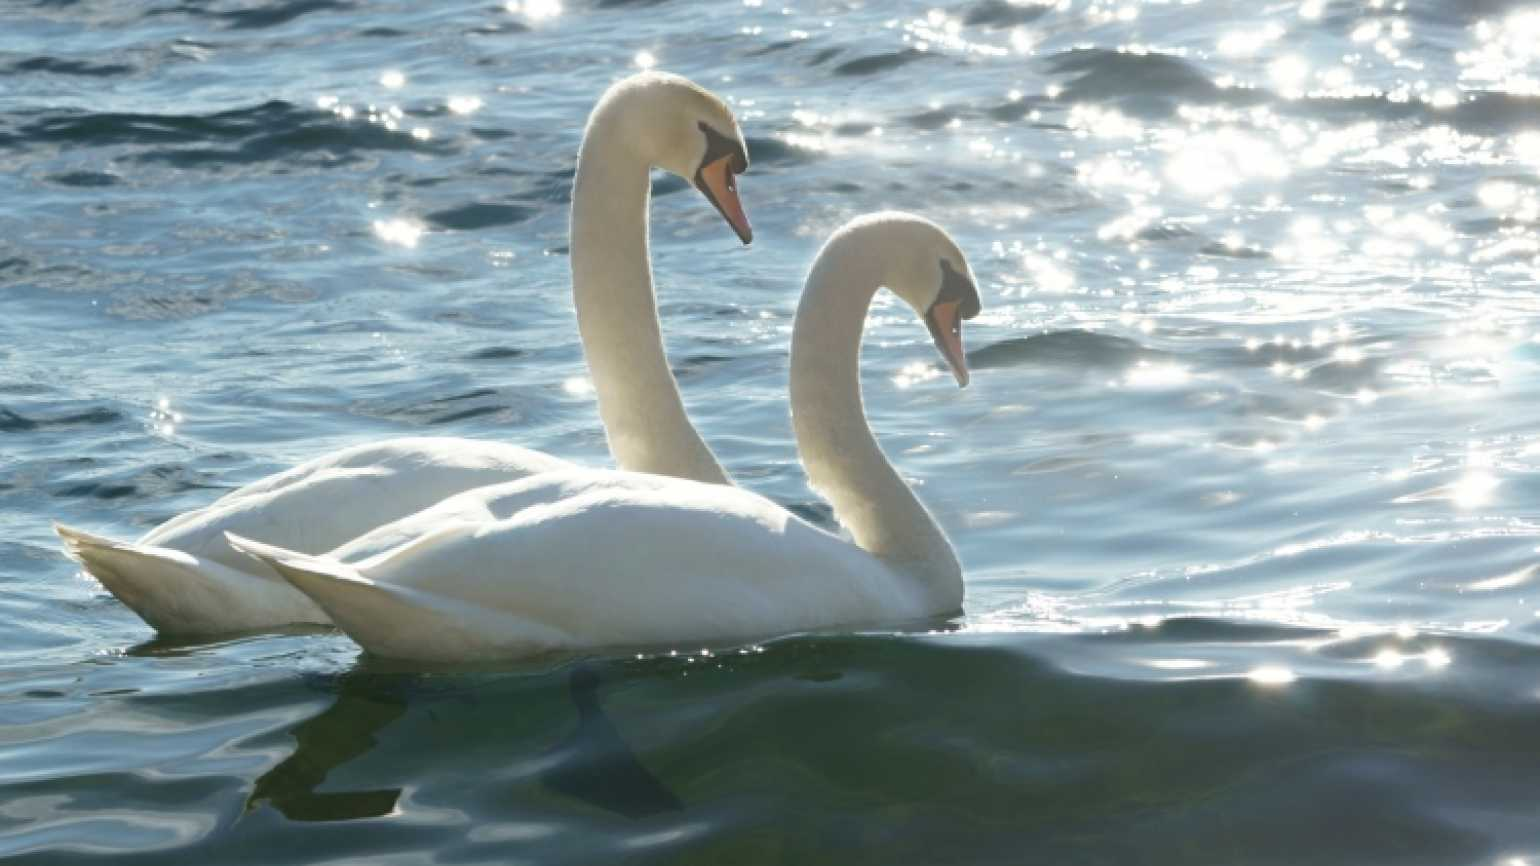 Pair of swans symbol for Lent